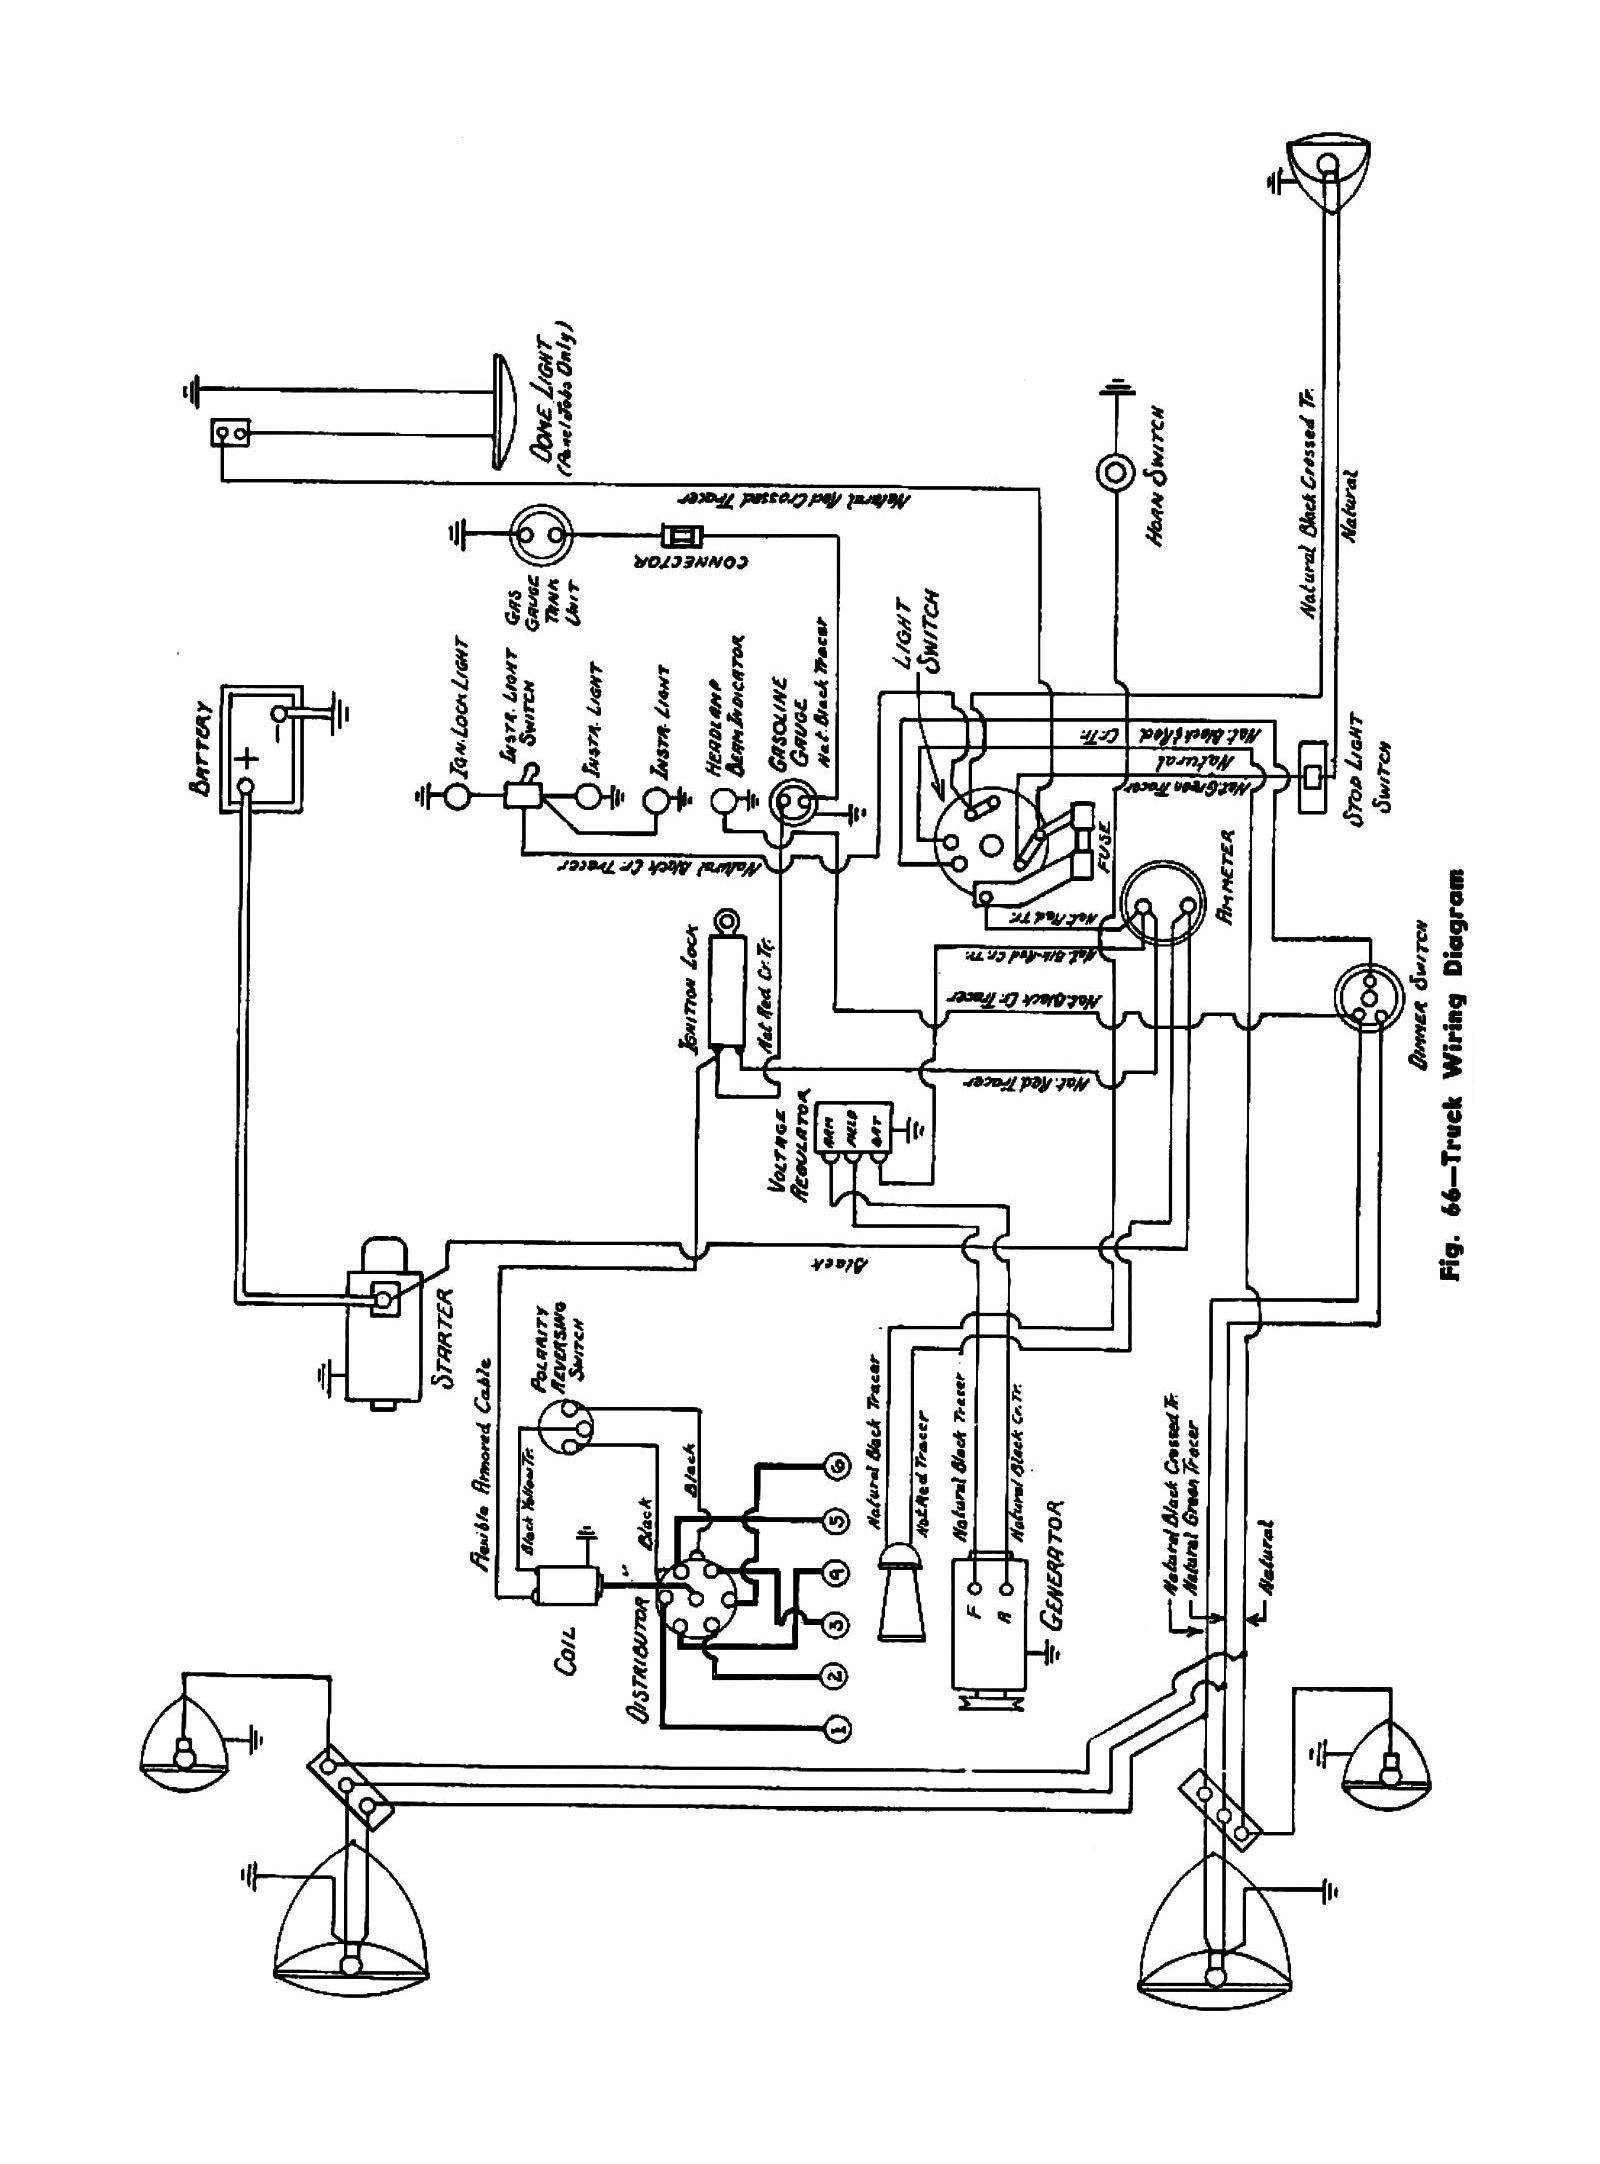 45truck ihc truck wiring diagrams mazda truck wiring diagrams \u2022 free  at n-0.co